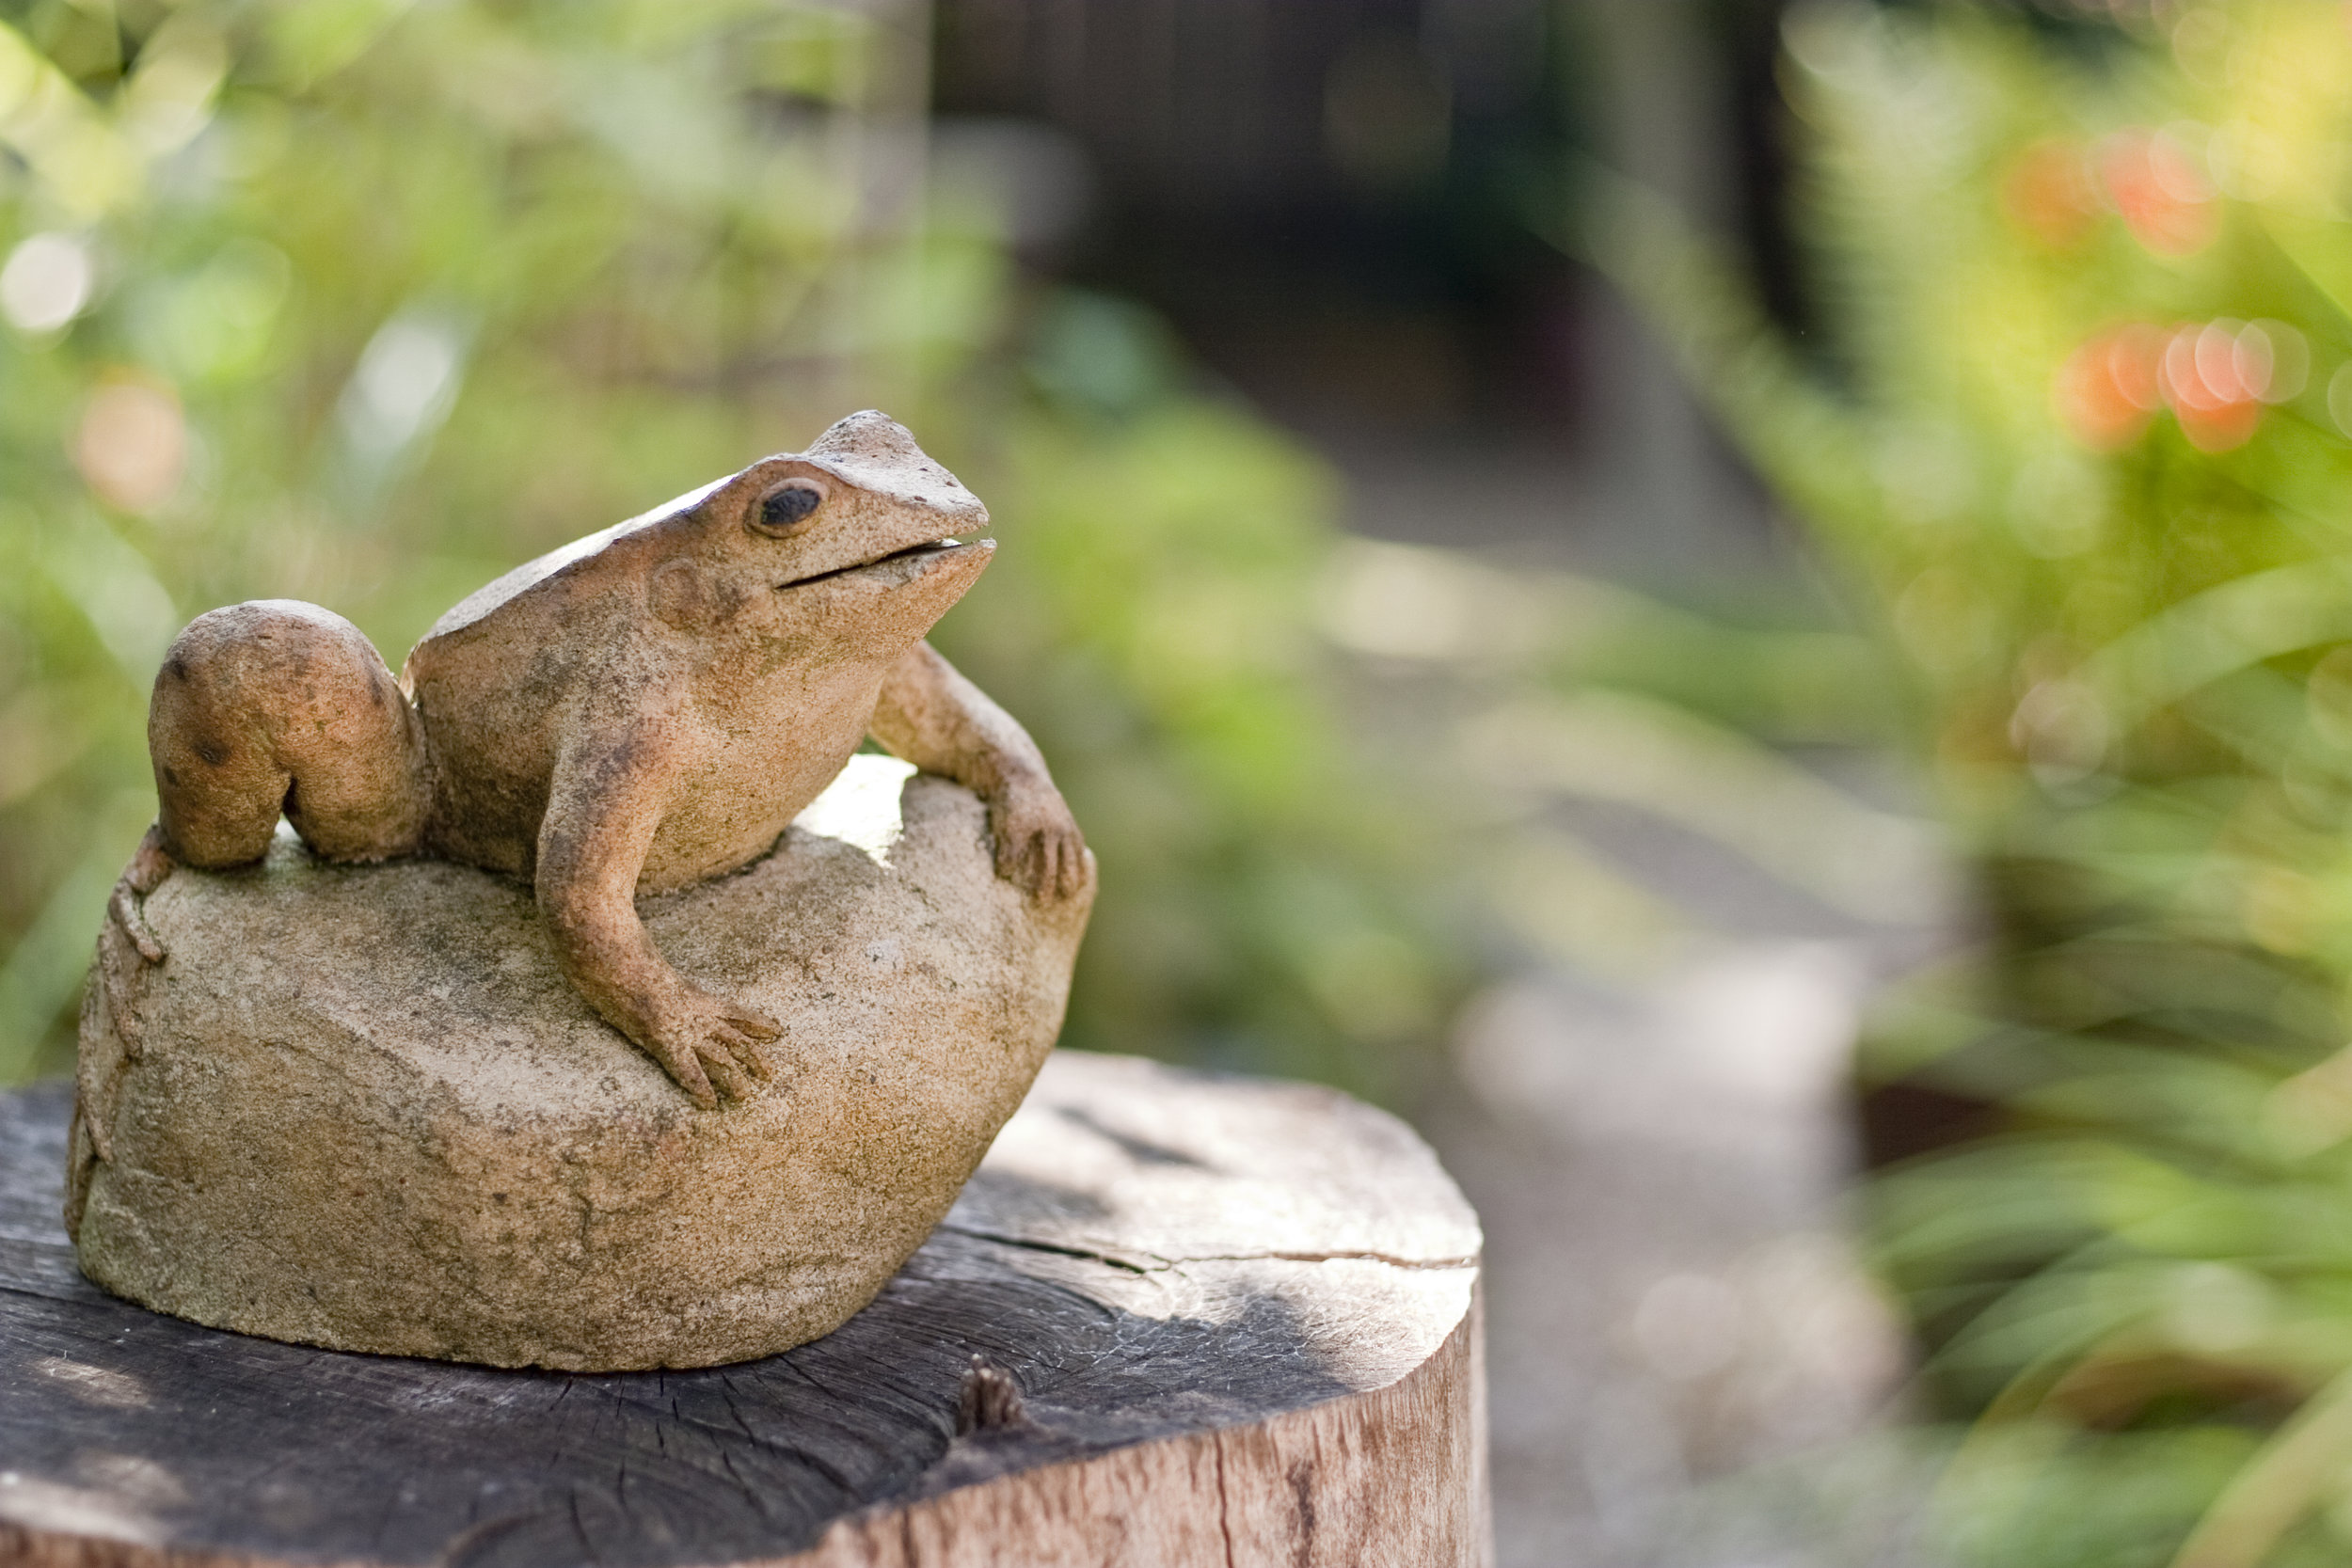 Photo of stone ornamental frog on top of log